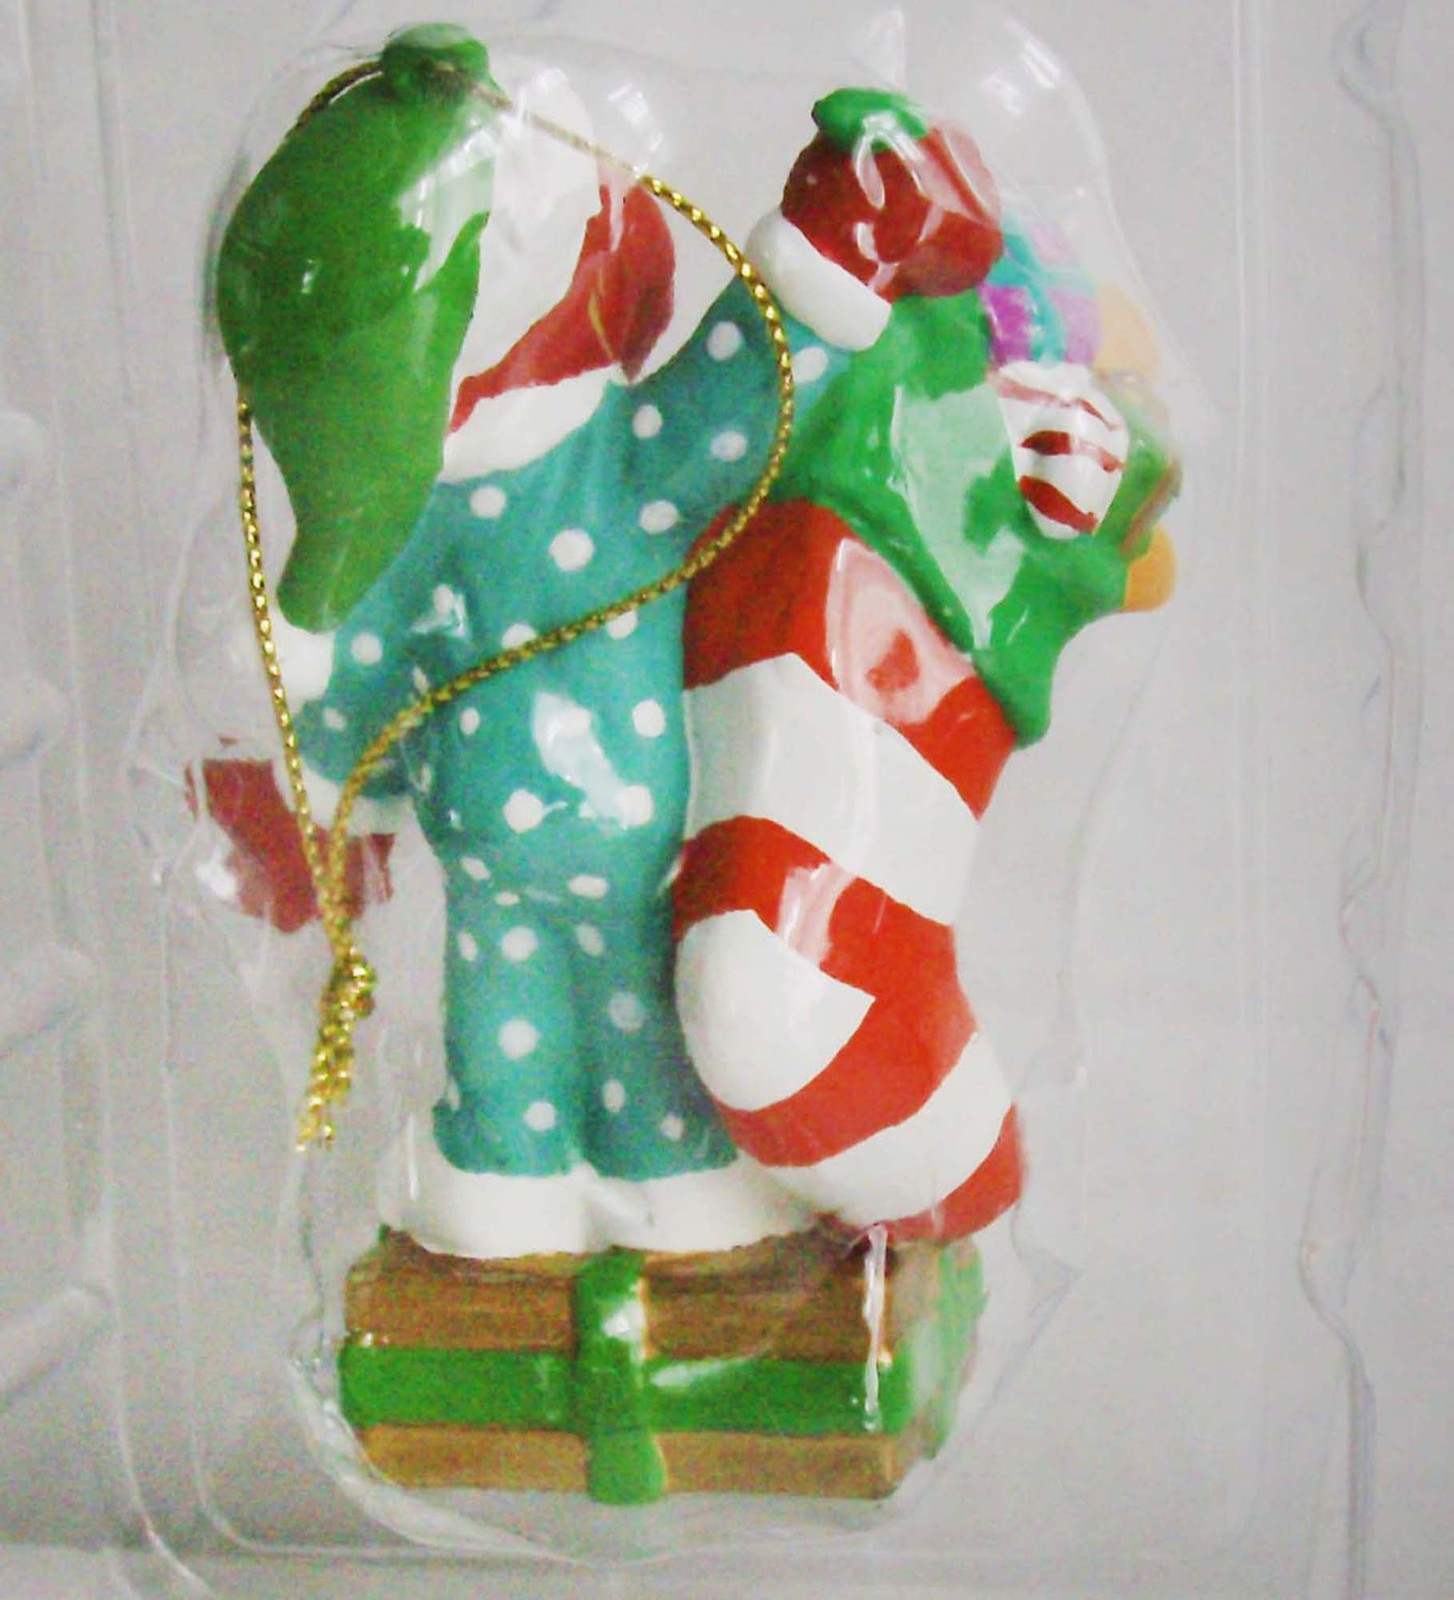 ELMO WITH STOCKING & TOYS CHRISTMAS TREE ORNAMENT MINT IN BOX. SESAME ST MUPPET